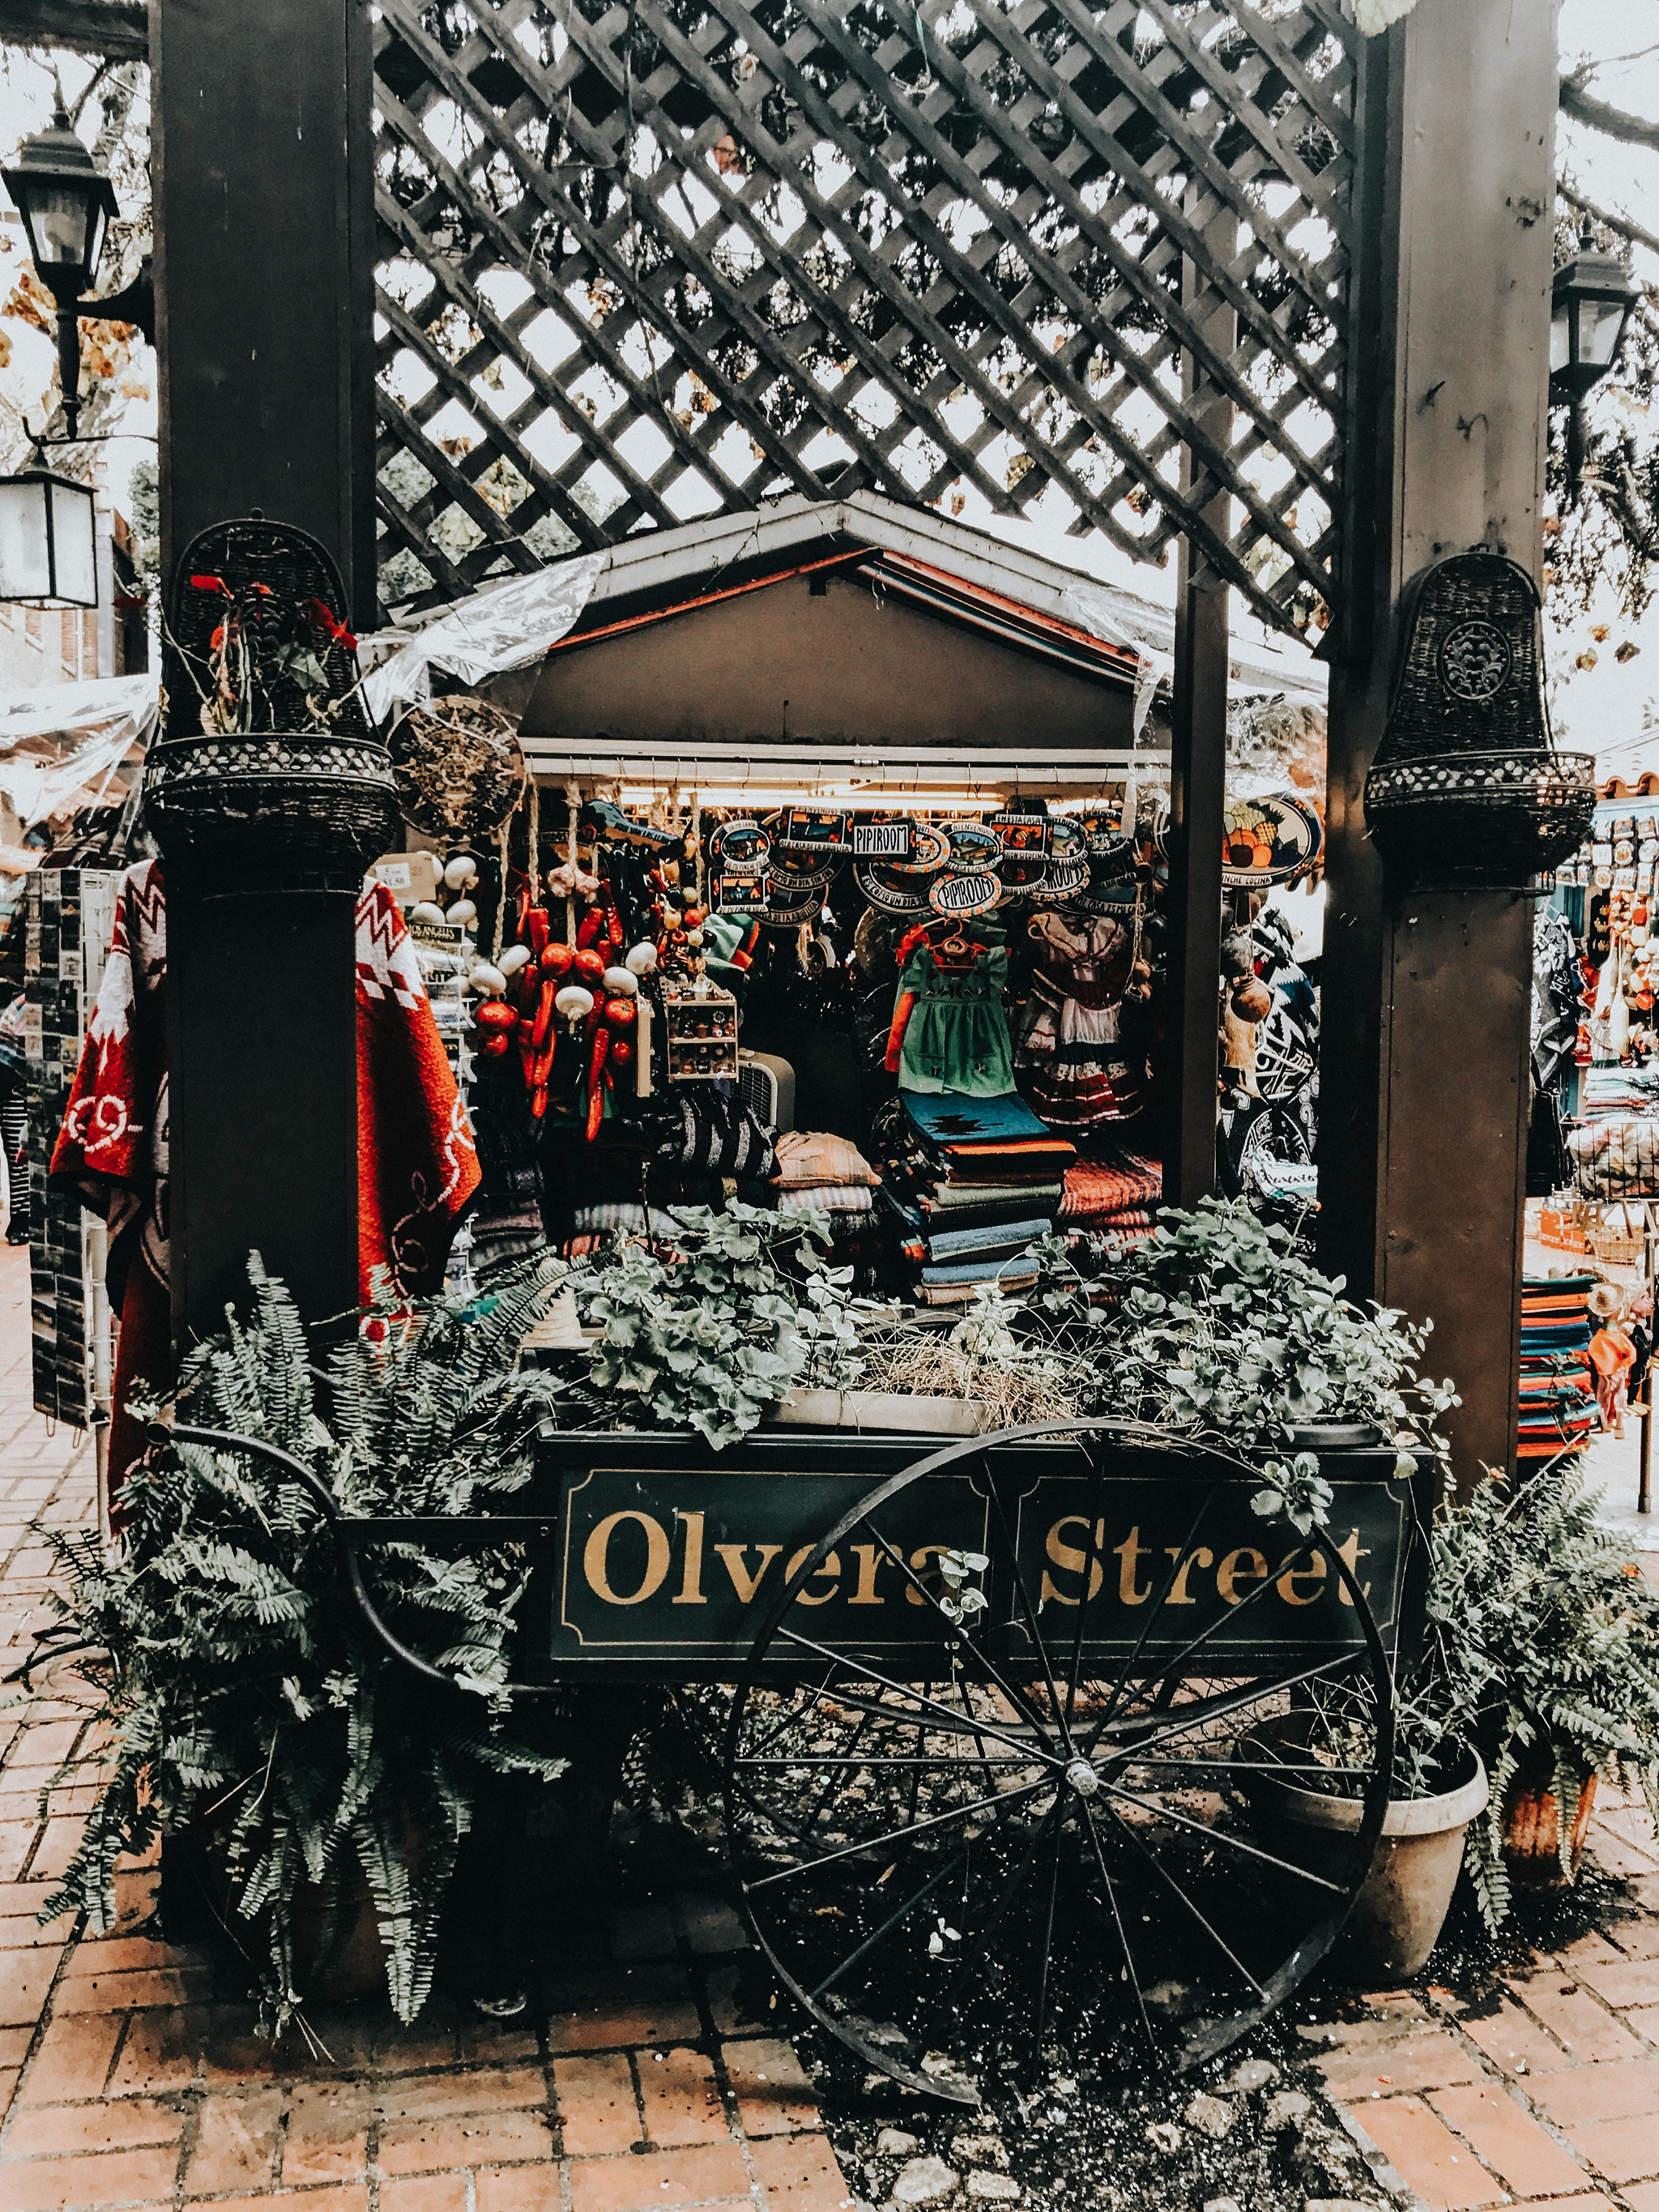 On my own again, I headed over to Olvera Street where I picked up some gorgeous Mexican trickets and gifts from the markets.